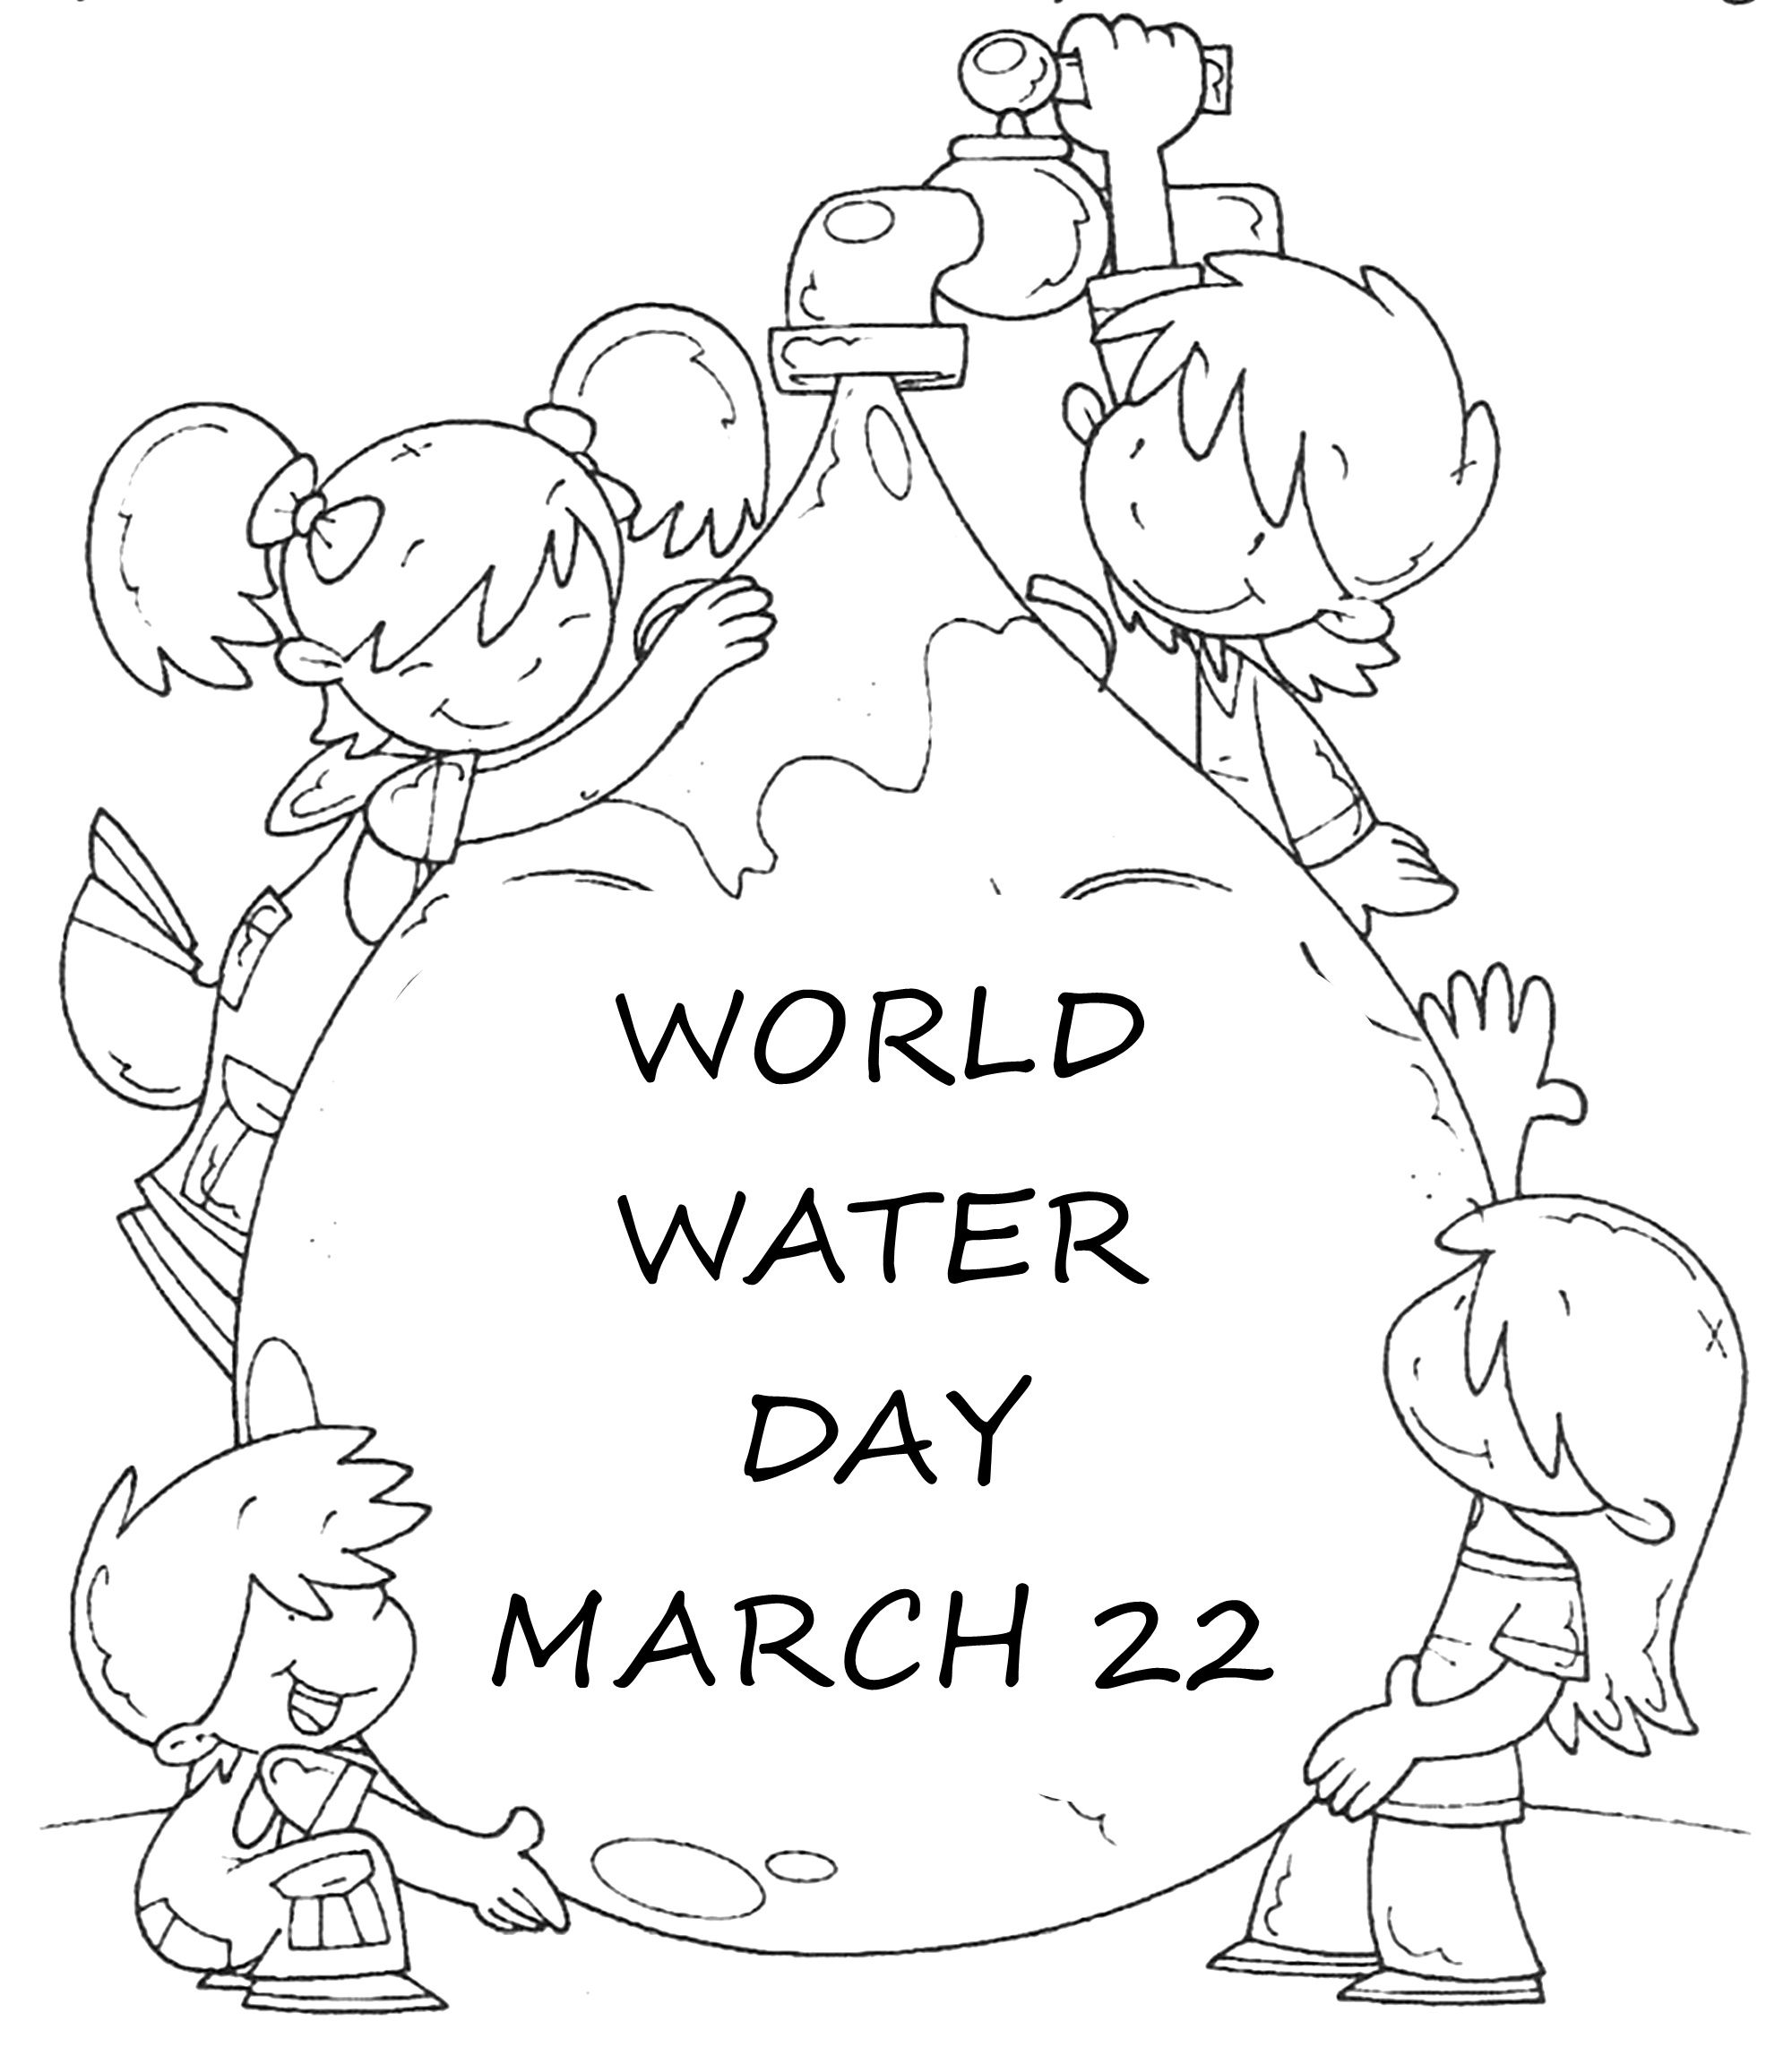 World Water Day Coloring Page Activity | Work Ideas | Free